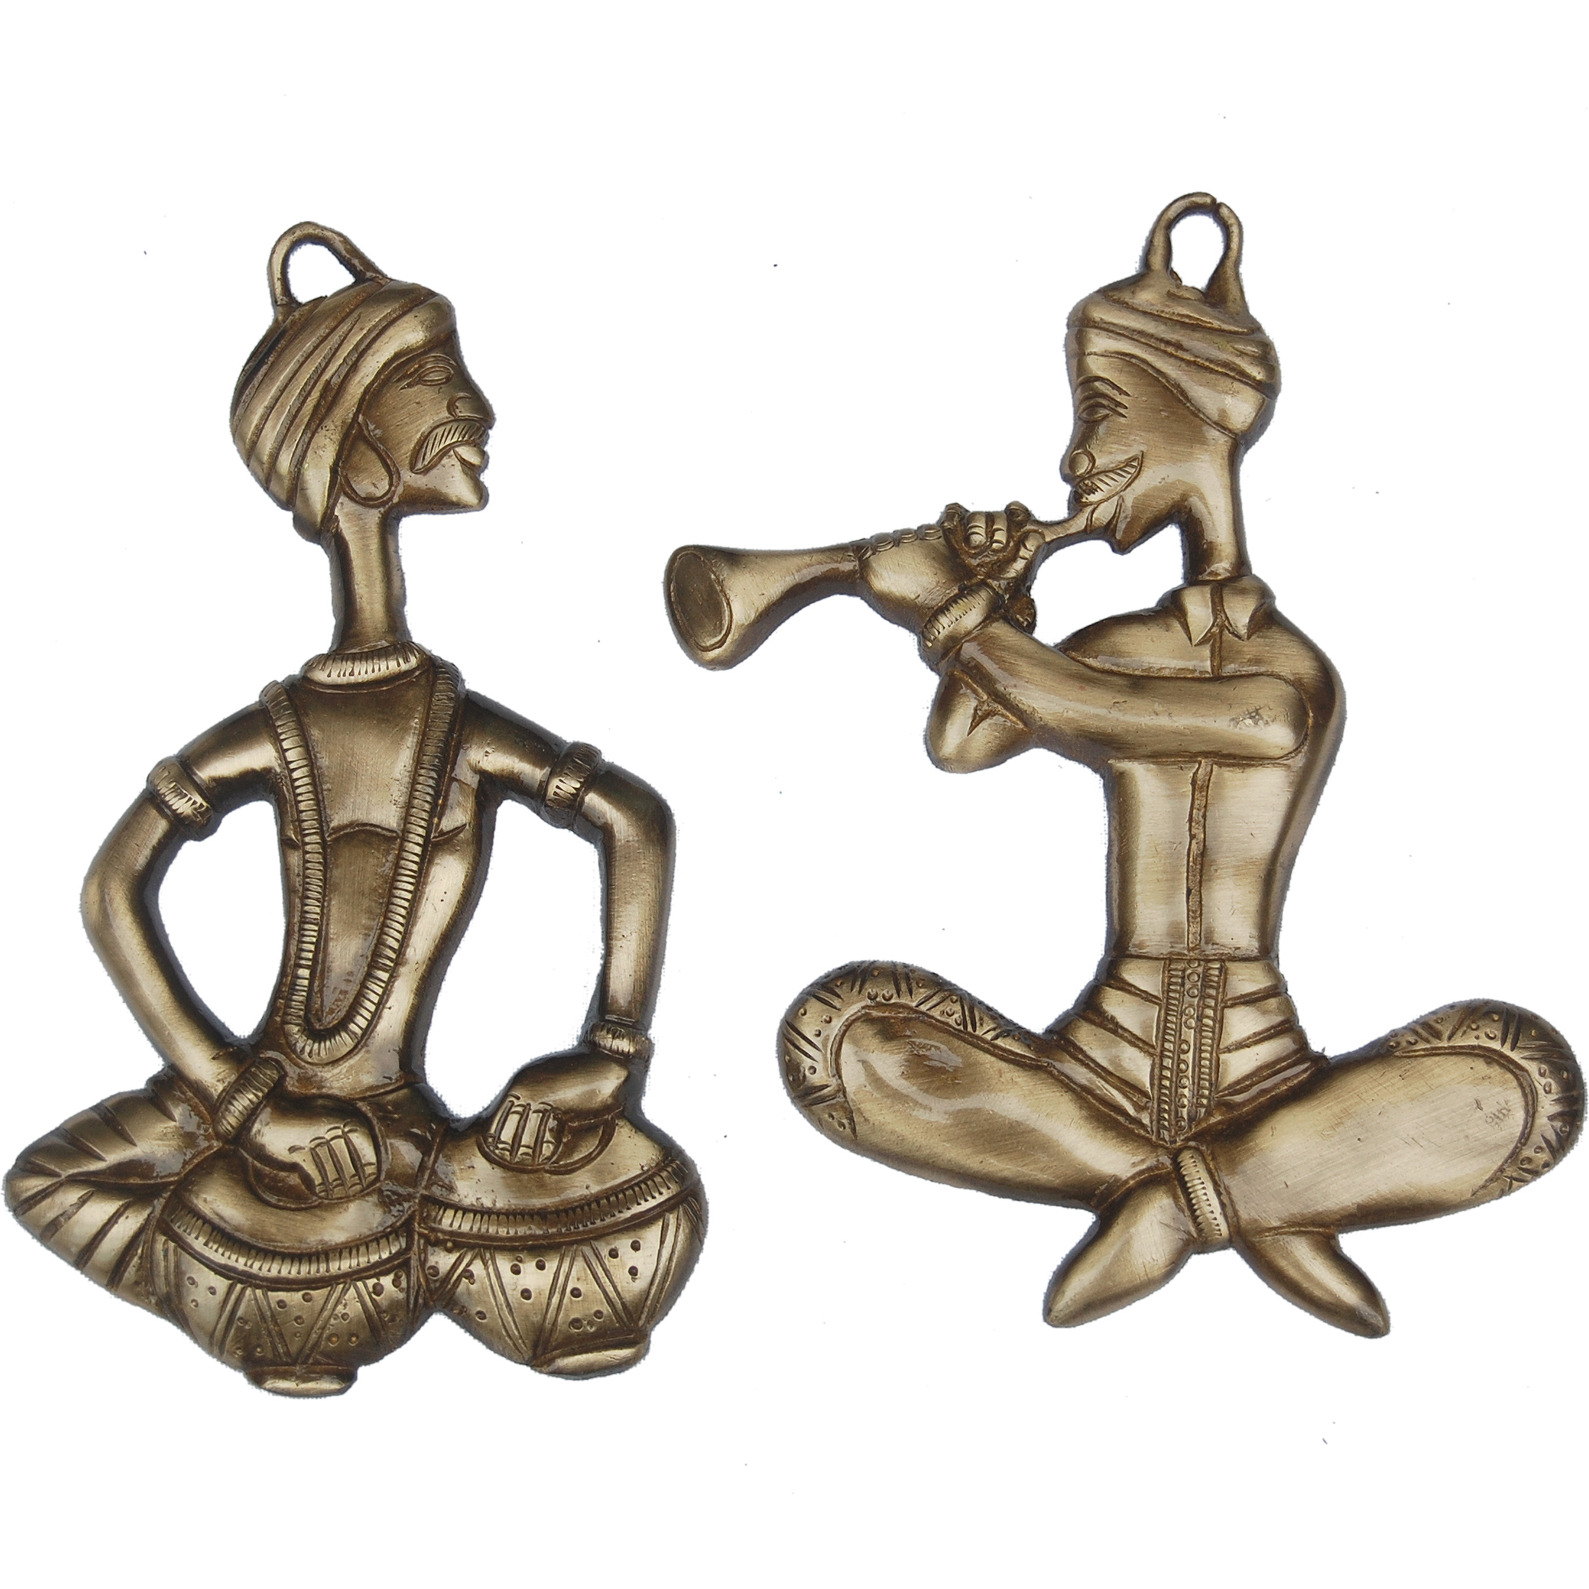 Aakrati Decorative Wall Hanging Brass Made Sitting Men Statue - Metal Indian Handmade Gift